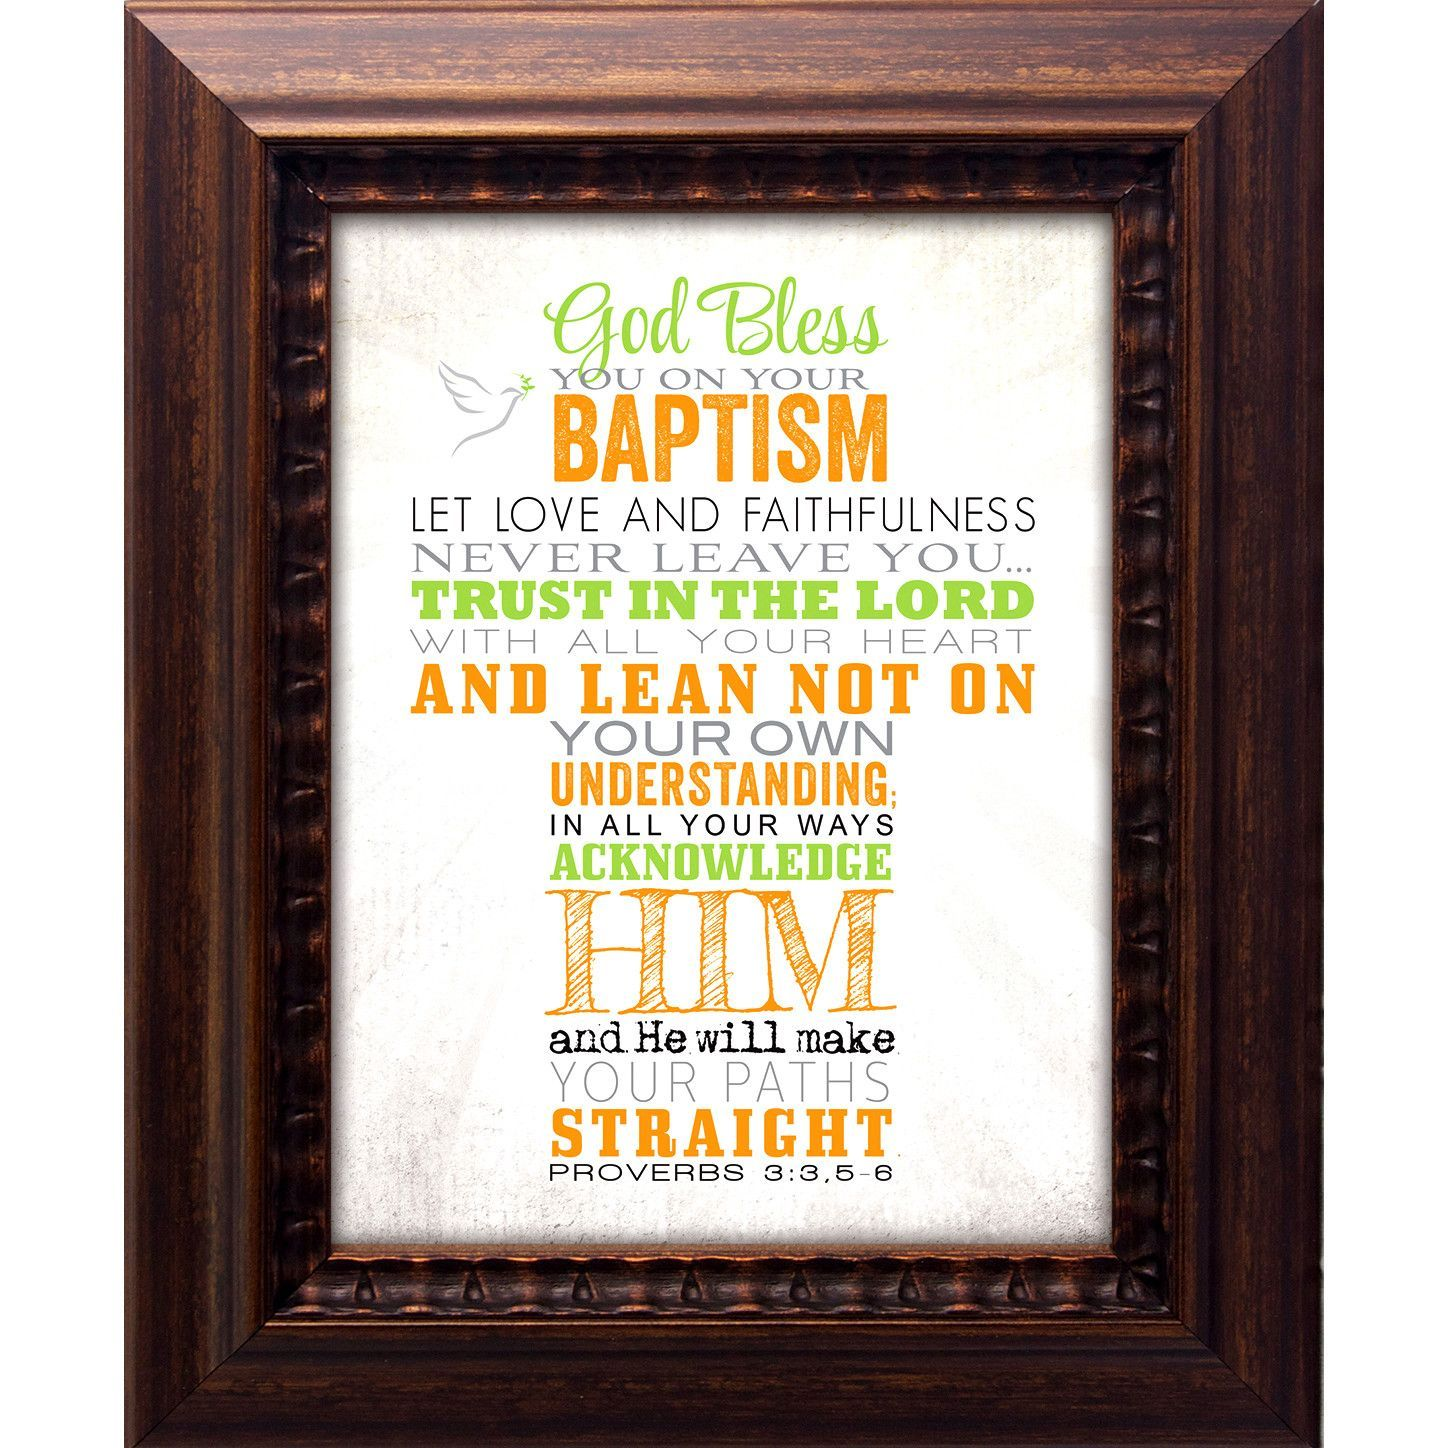 Baptismgod bless you on your framed graphic art products